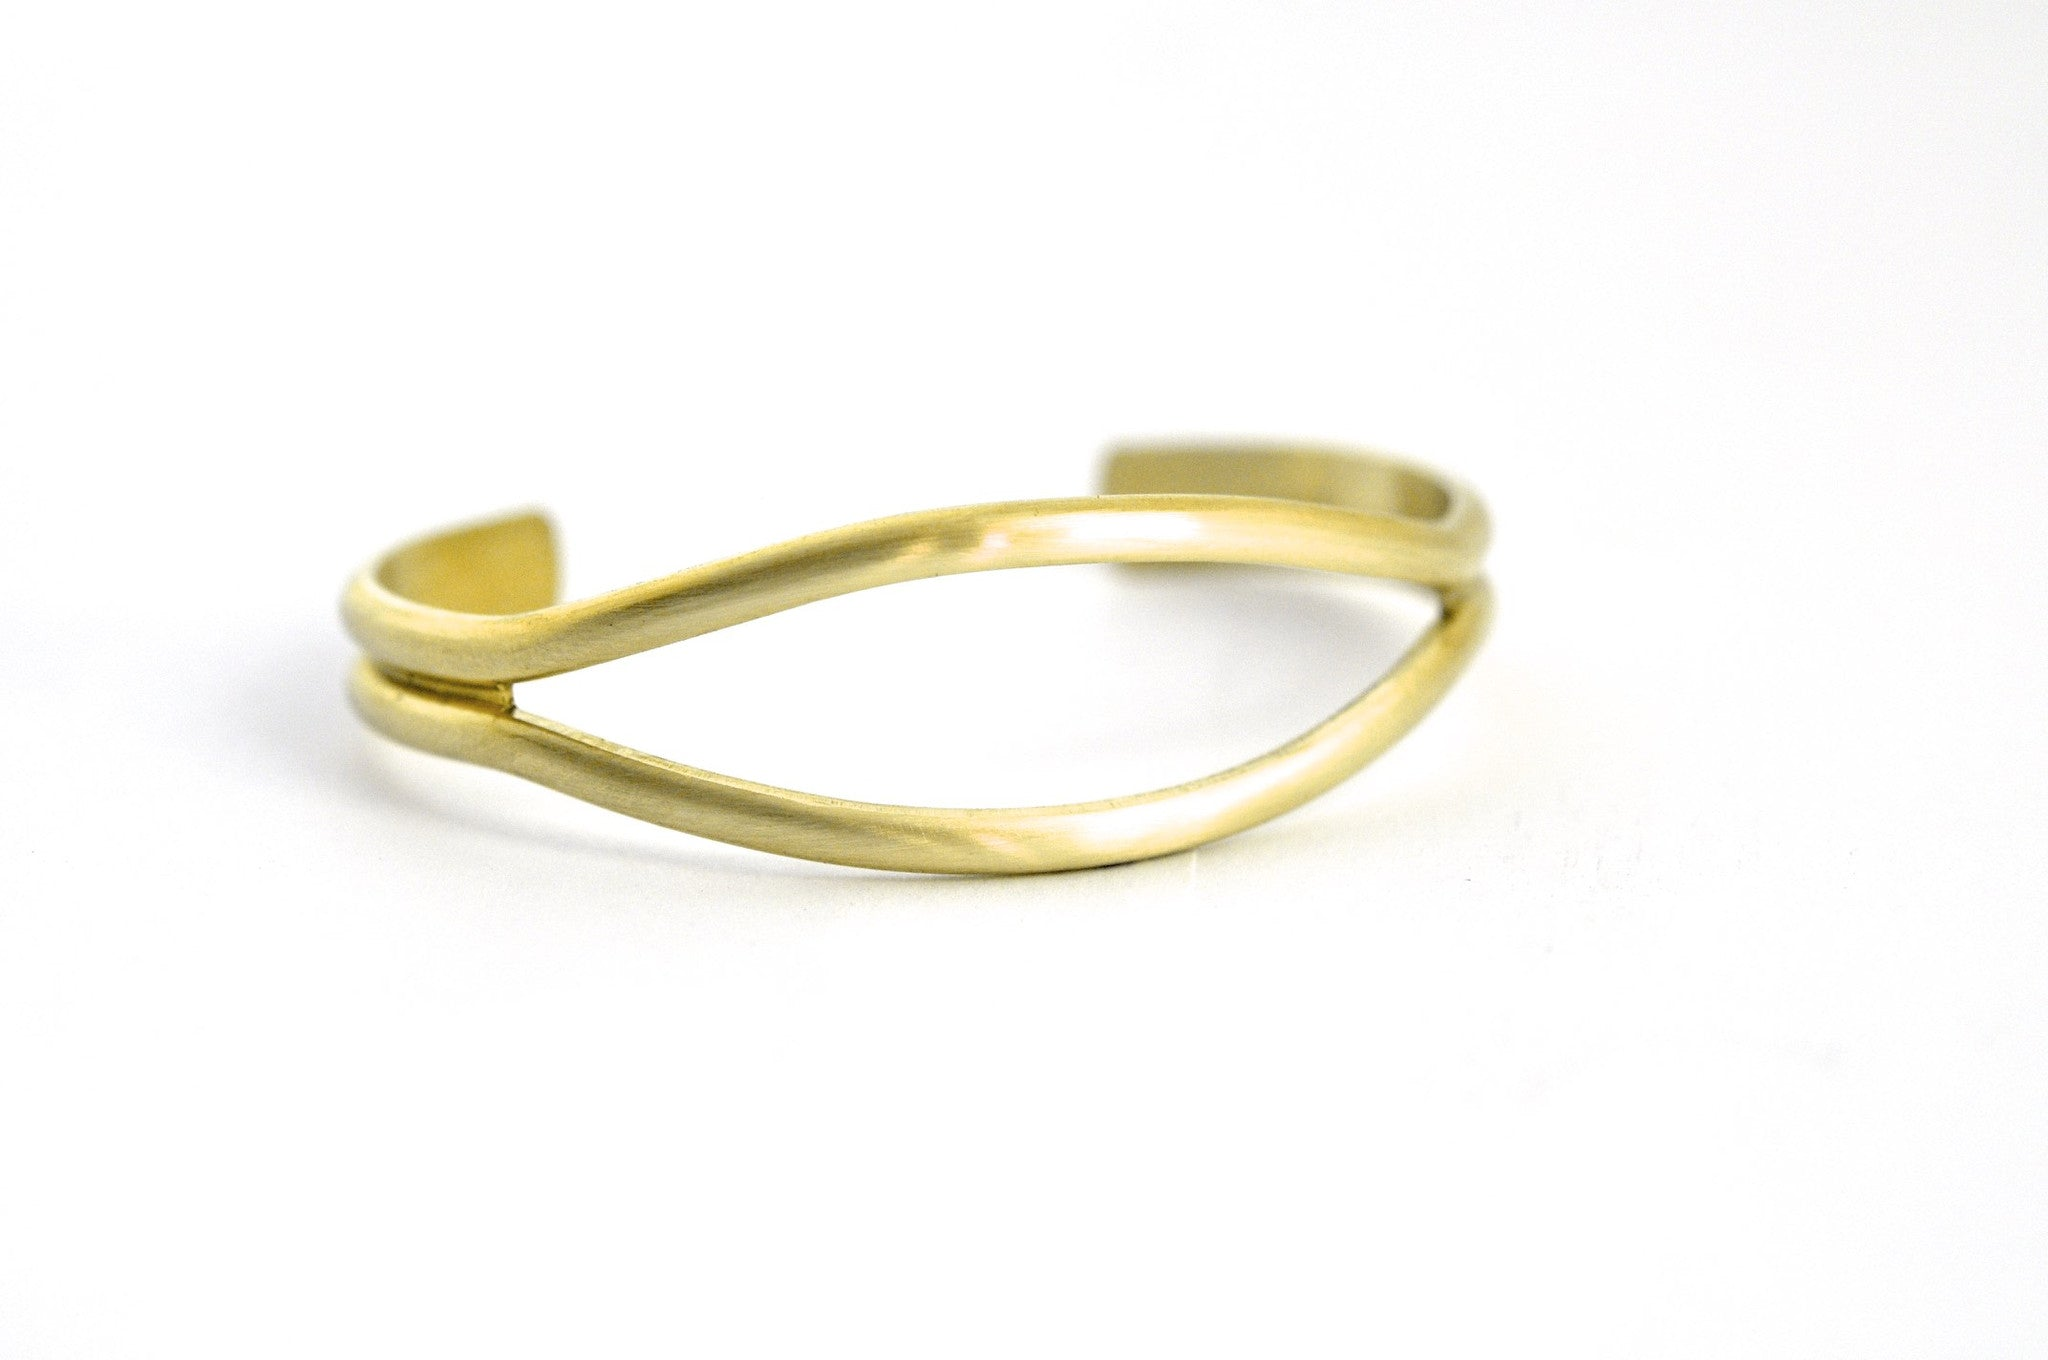 bracelet / brass oval open cuff